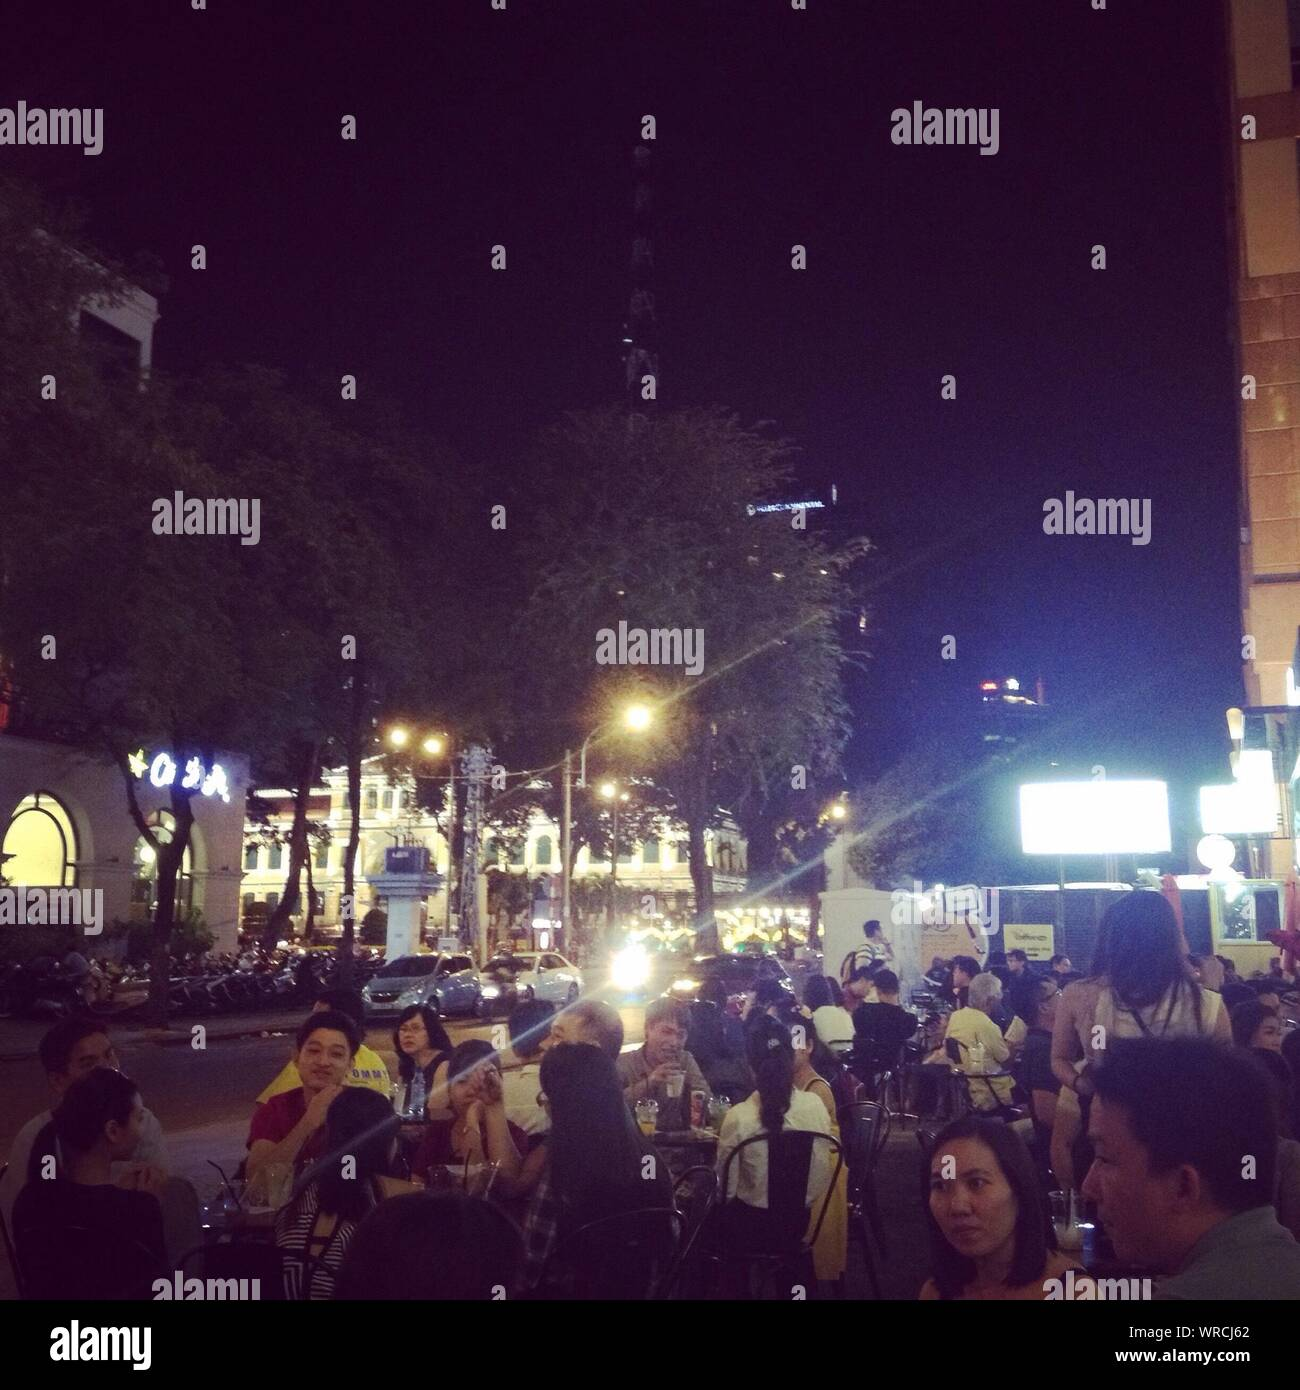 People Sitting At Sidewalk Cafe At Night Stock Photo